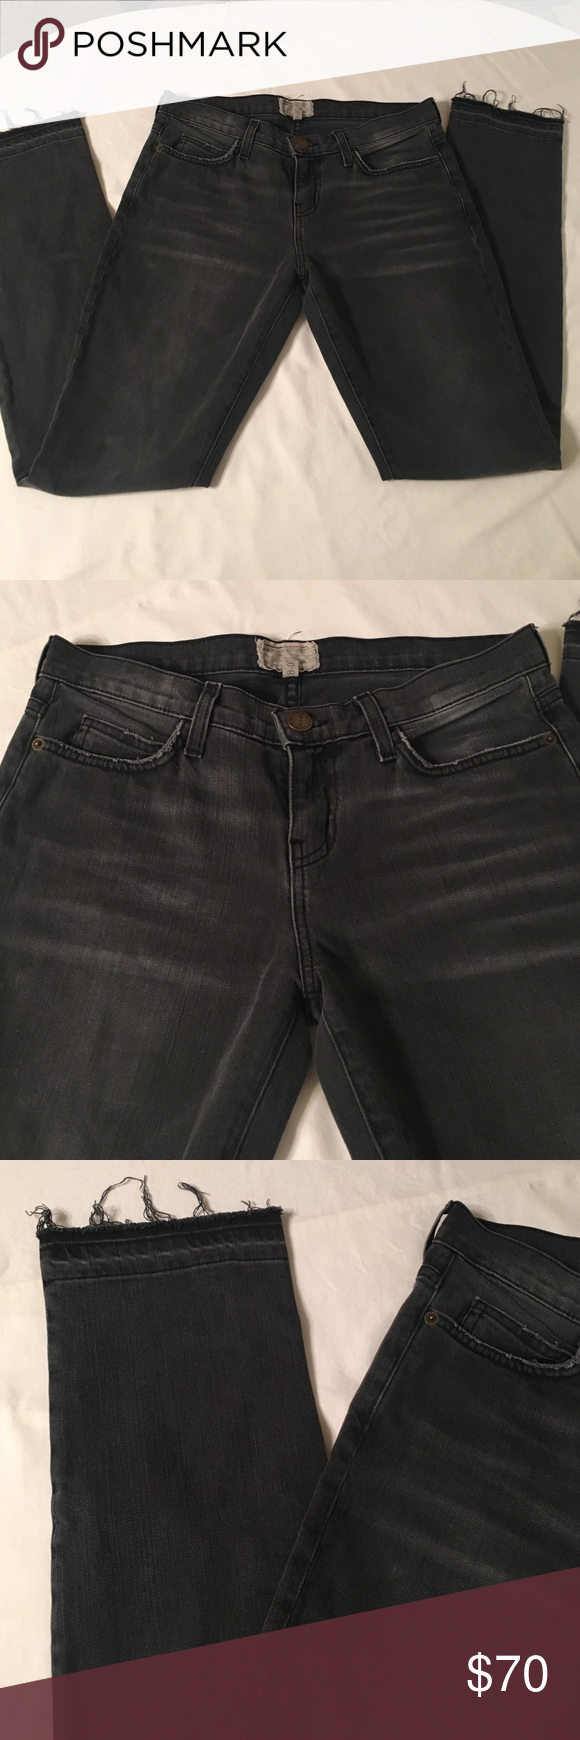 "CURRENT ELLIOTT frayed skinny jeans These frayed and distressed jeans are in great condition! Dark gray color. INSEAM: 32"" Current/Elliott Jeans Straight Leg"